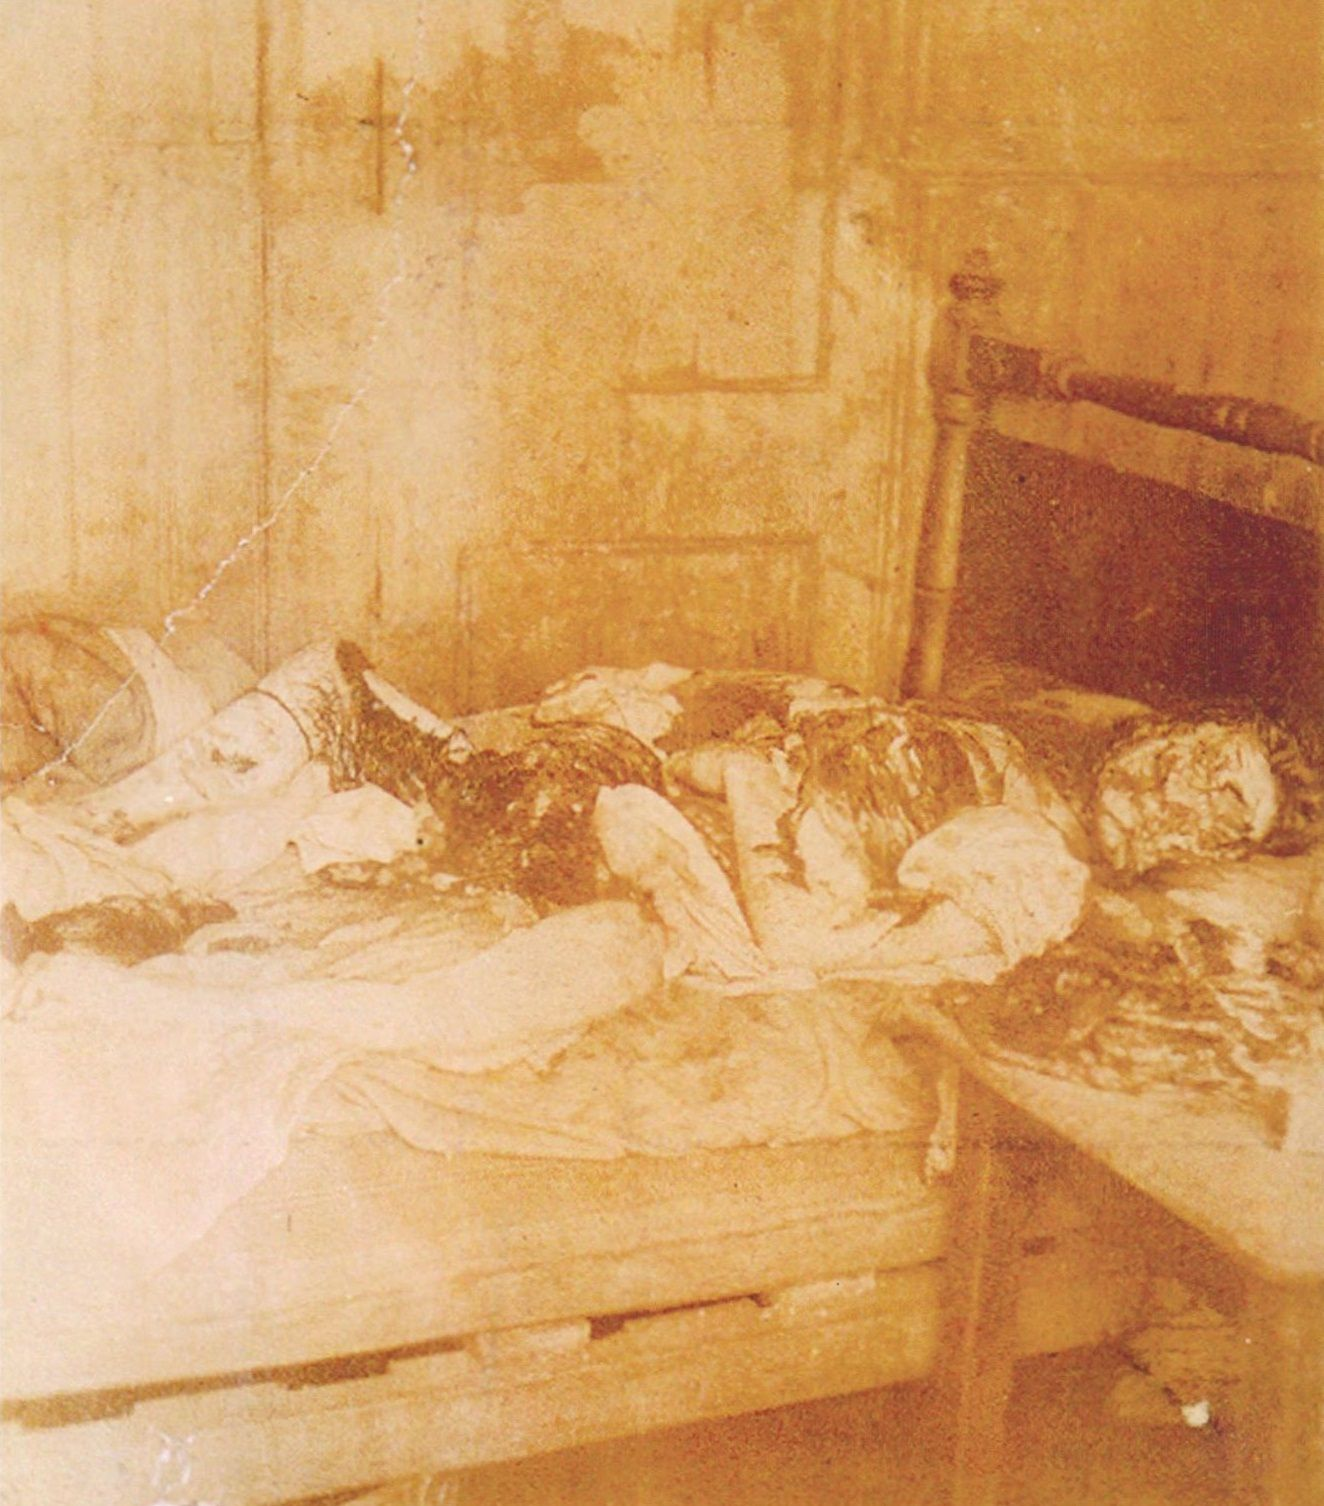 Police photograph of the murder scene of Mary Jane Kelly ...